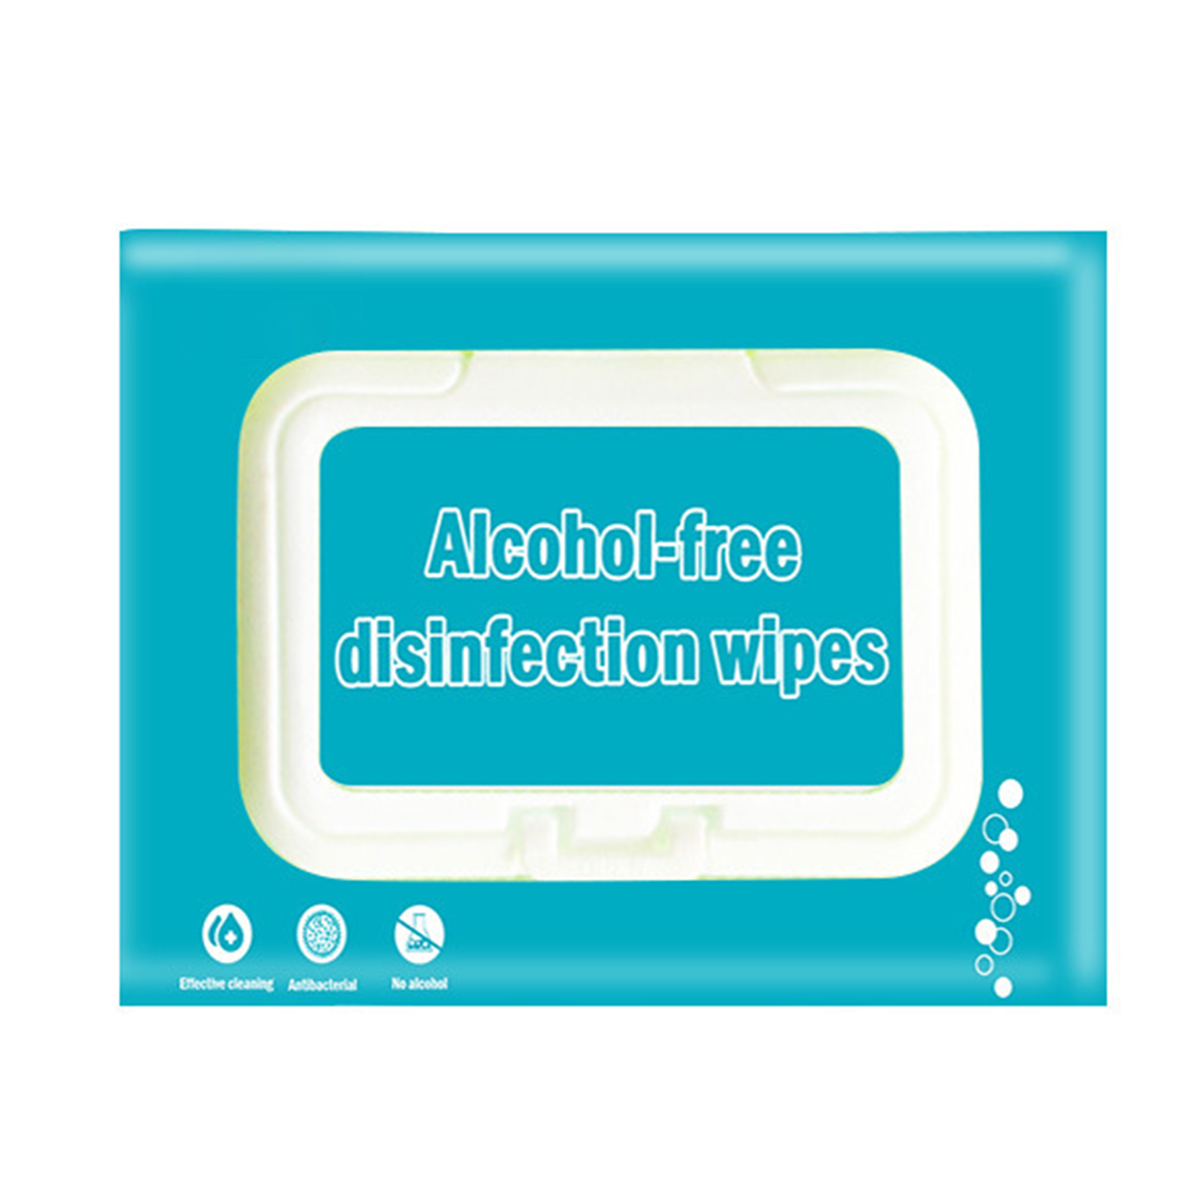 80pcs Portable Disposable Disinfection Wipes Non-Woven Hand Cleaning Wipes Alcohol-Free Anti-Bacterial Non-Irritating Wipes